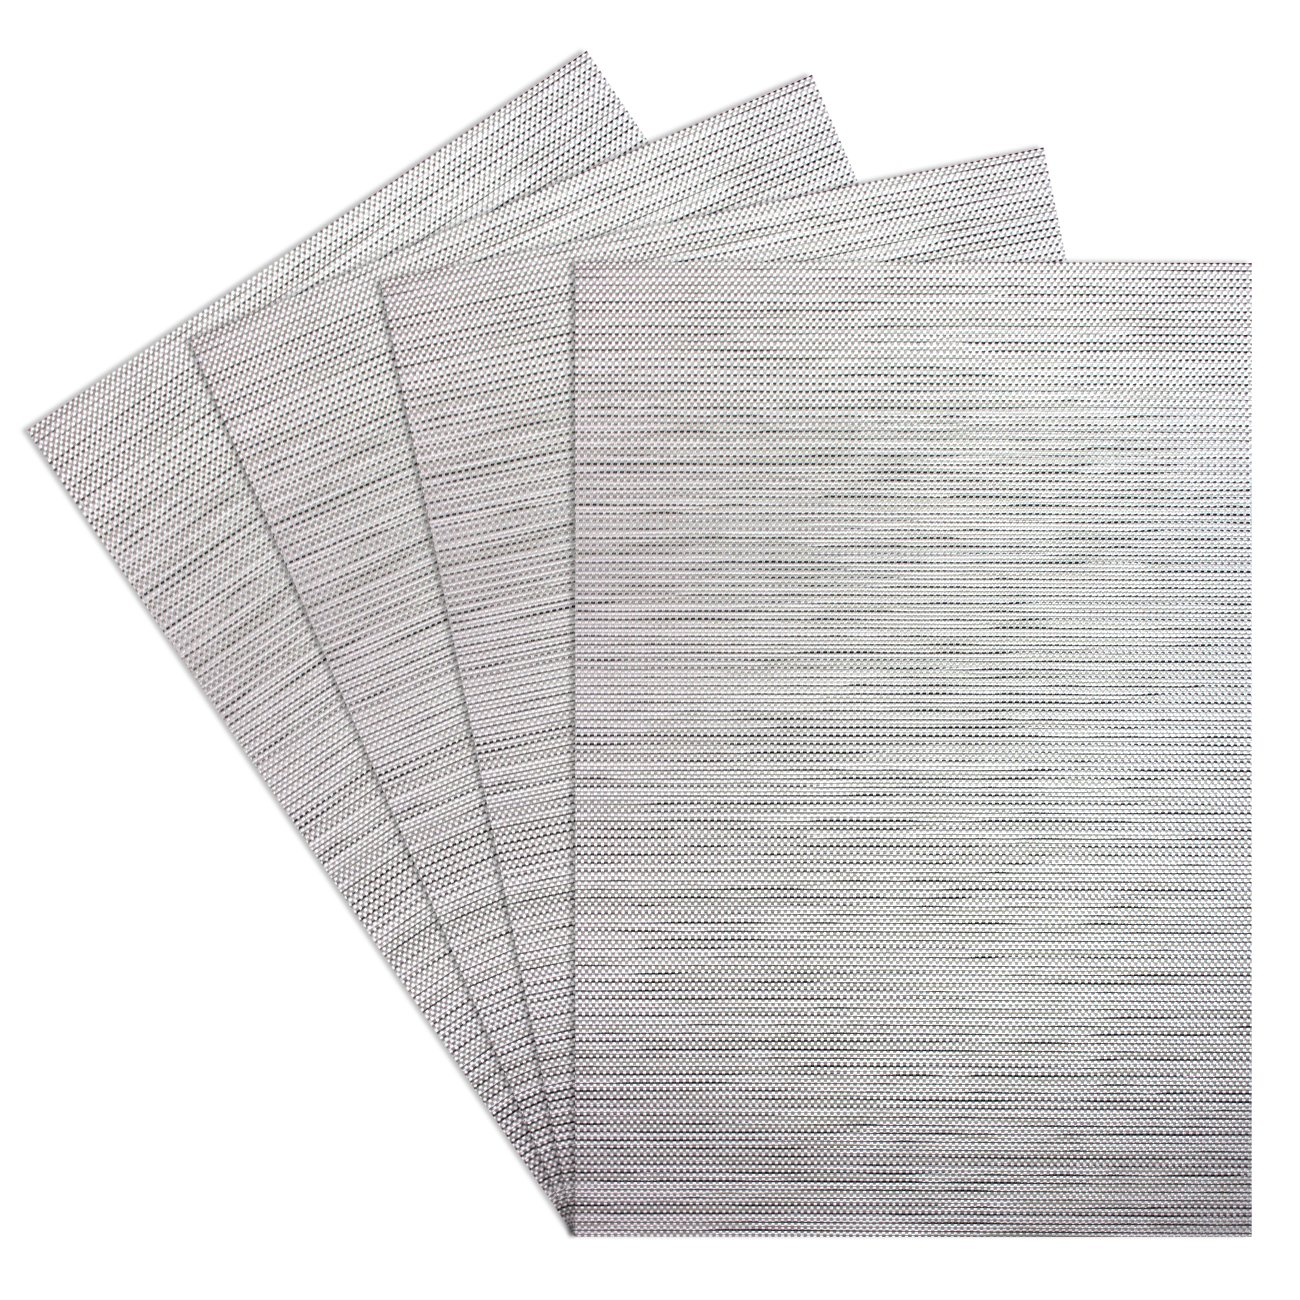 Kitchen PVC Placemats - Dining Room Heat Insulation Stain-resistant Eat Mats for Table - Rectangle Washable Recycled Non-slip Woven Plastic Vinyl Simple Style Place Mats,Set of 4,Silver